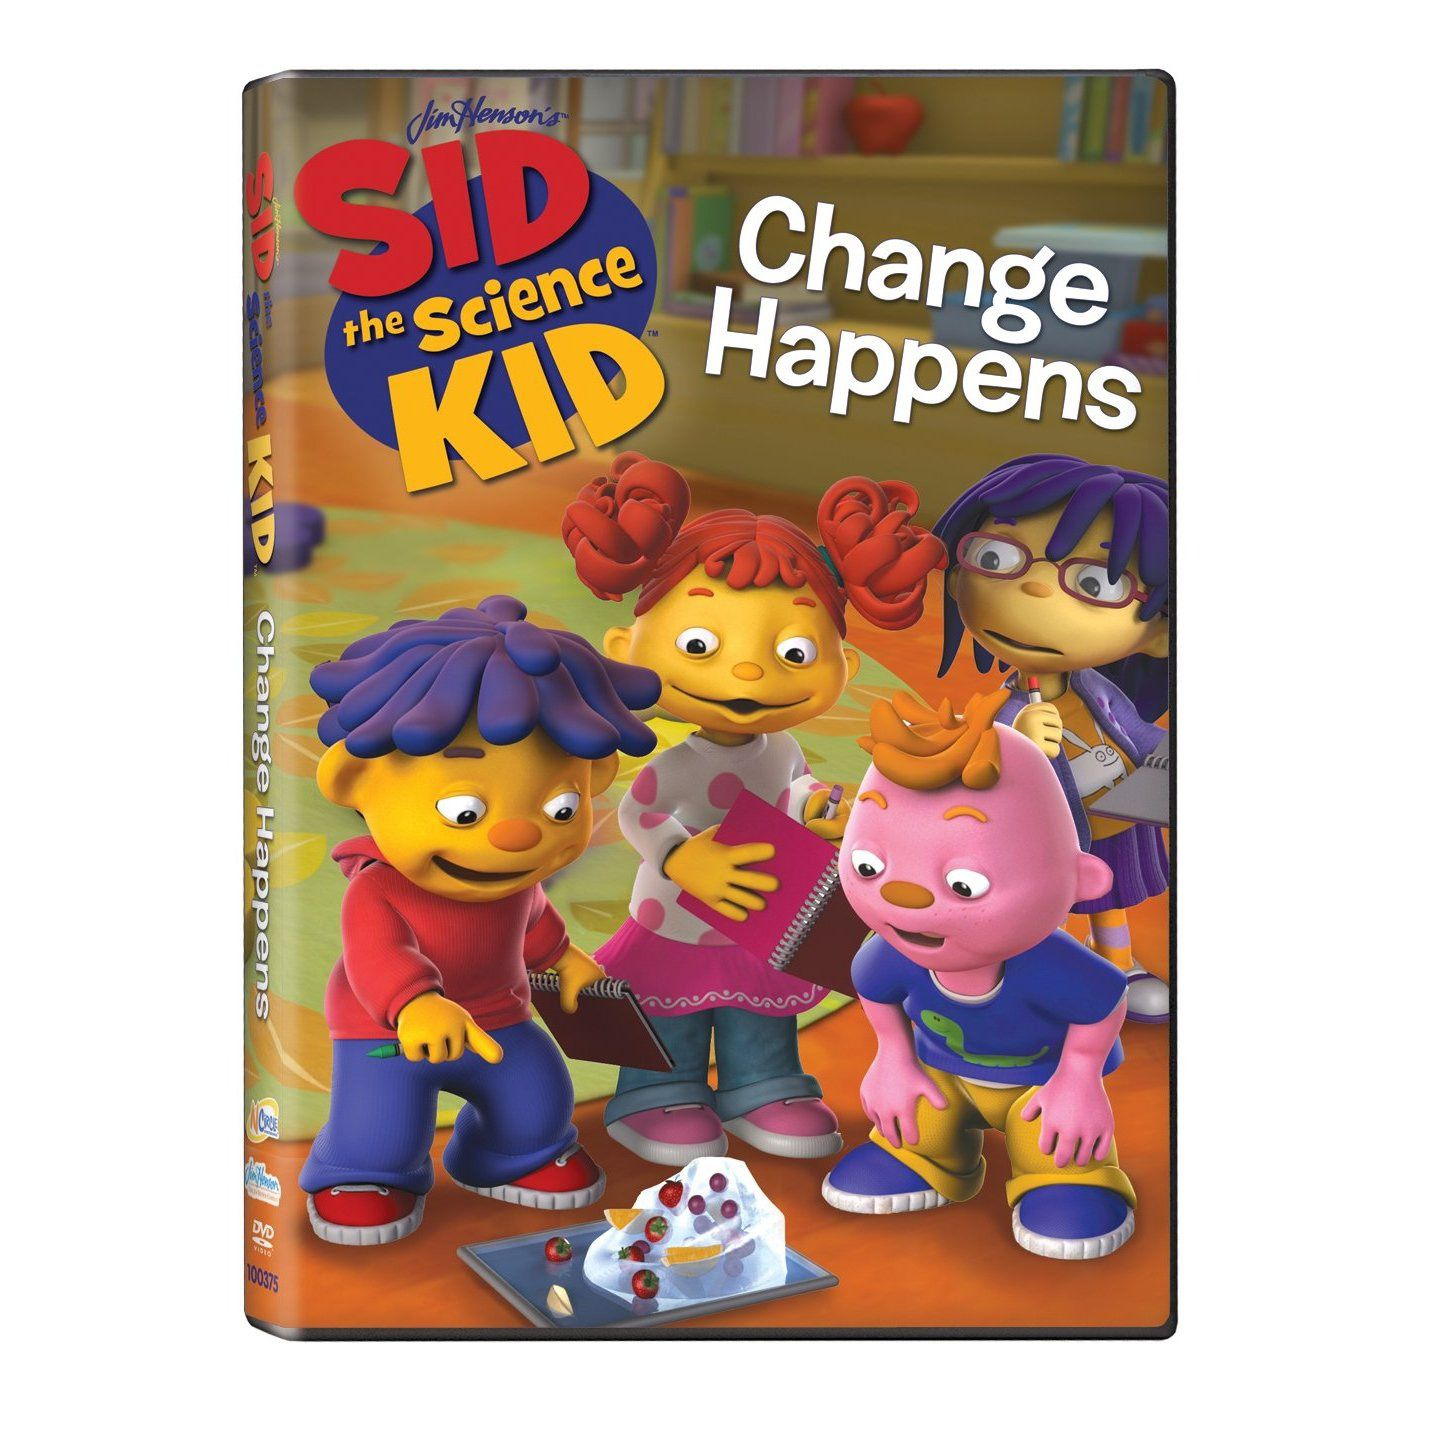 Pbs Kids Halloween Dvd.The Official Pbs Kids Shop Sid The Science Kid Change Happens Dvd